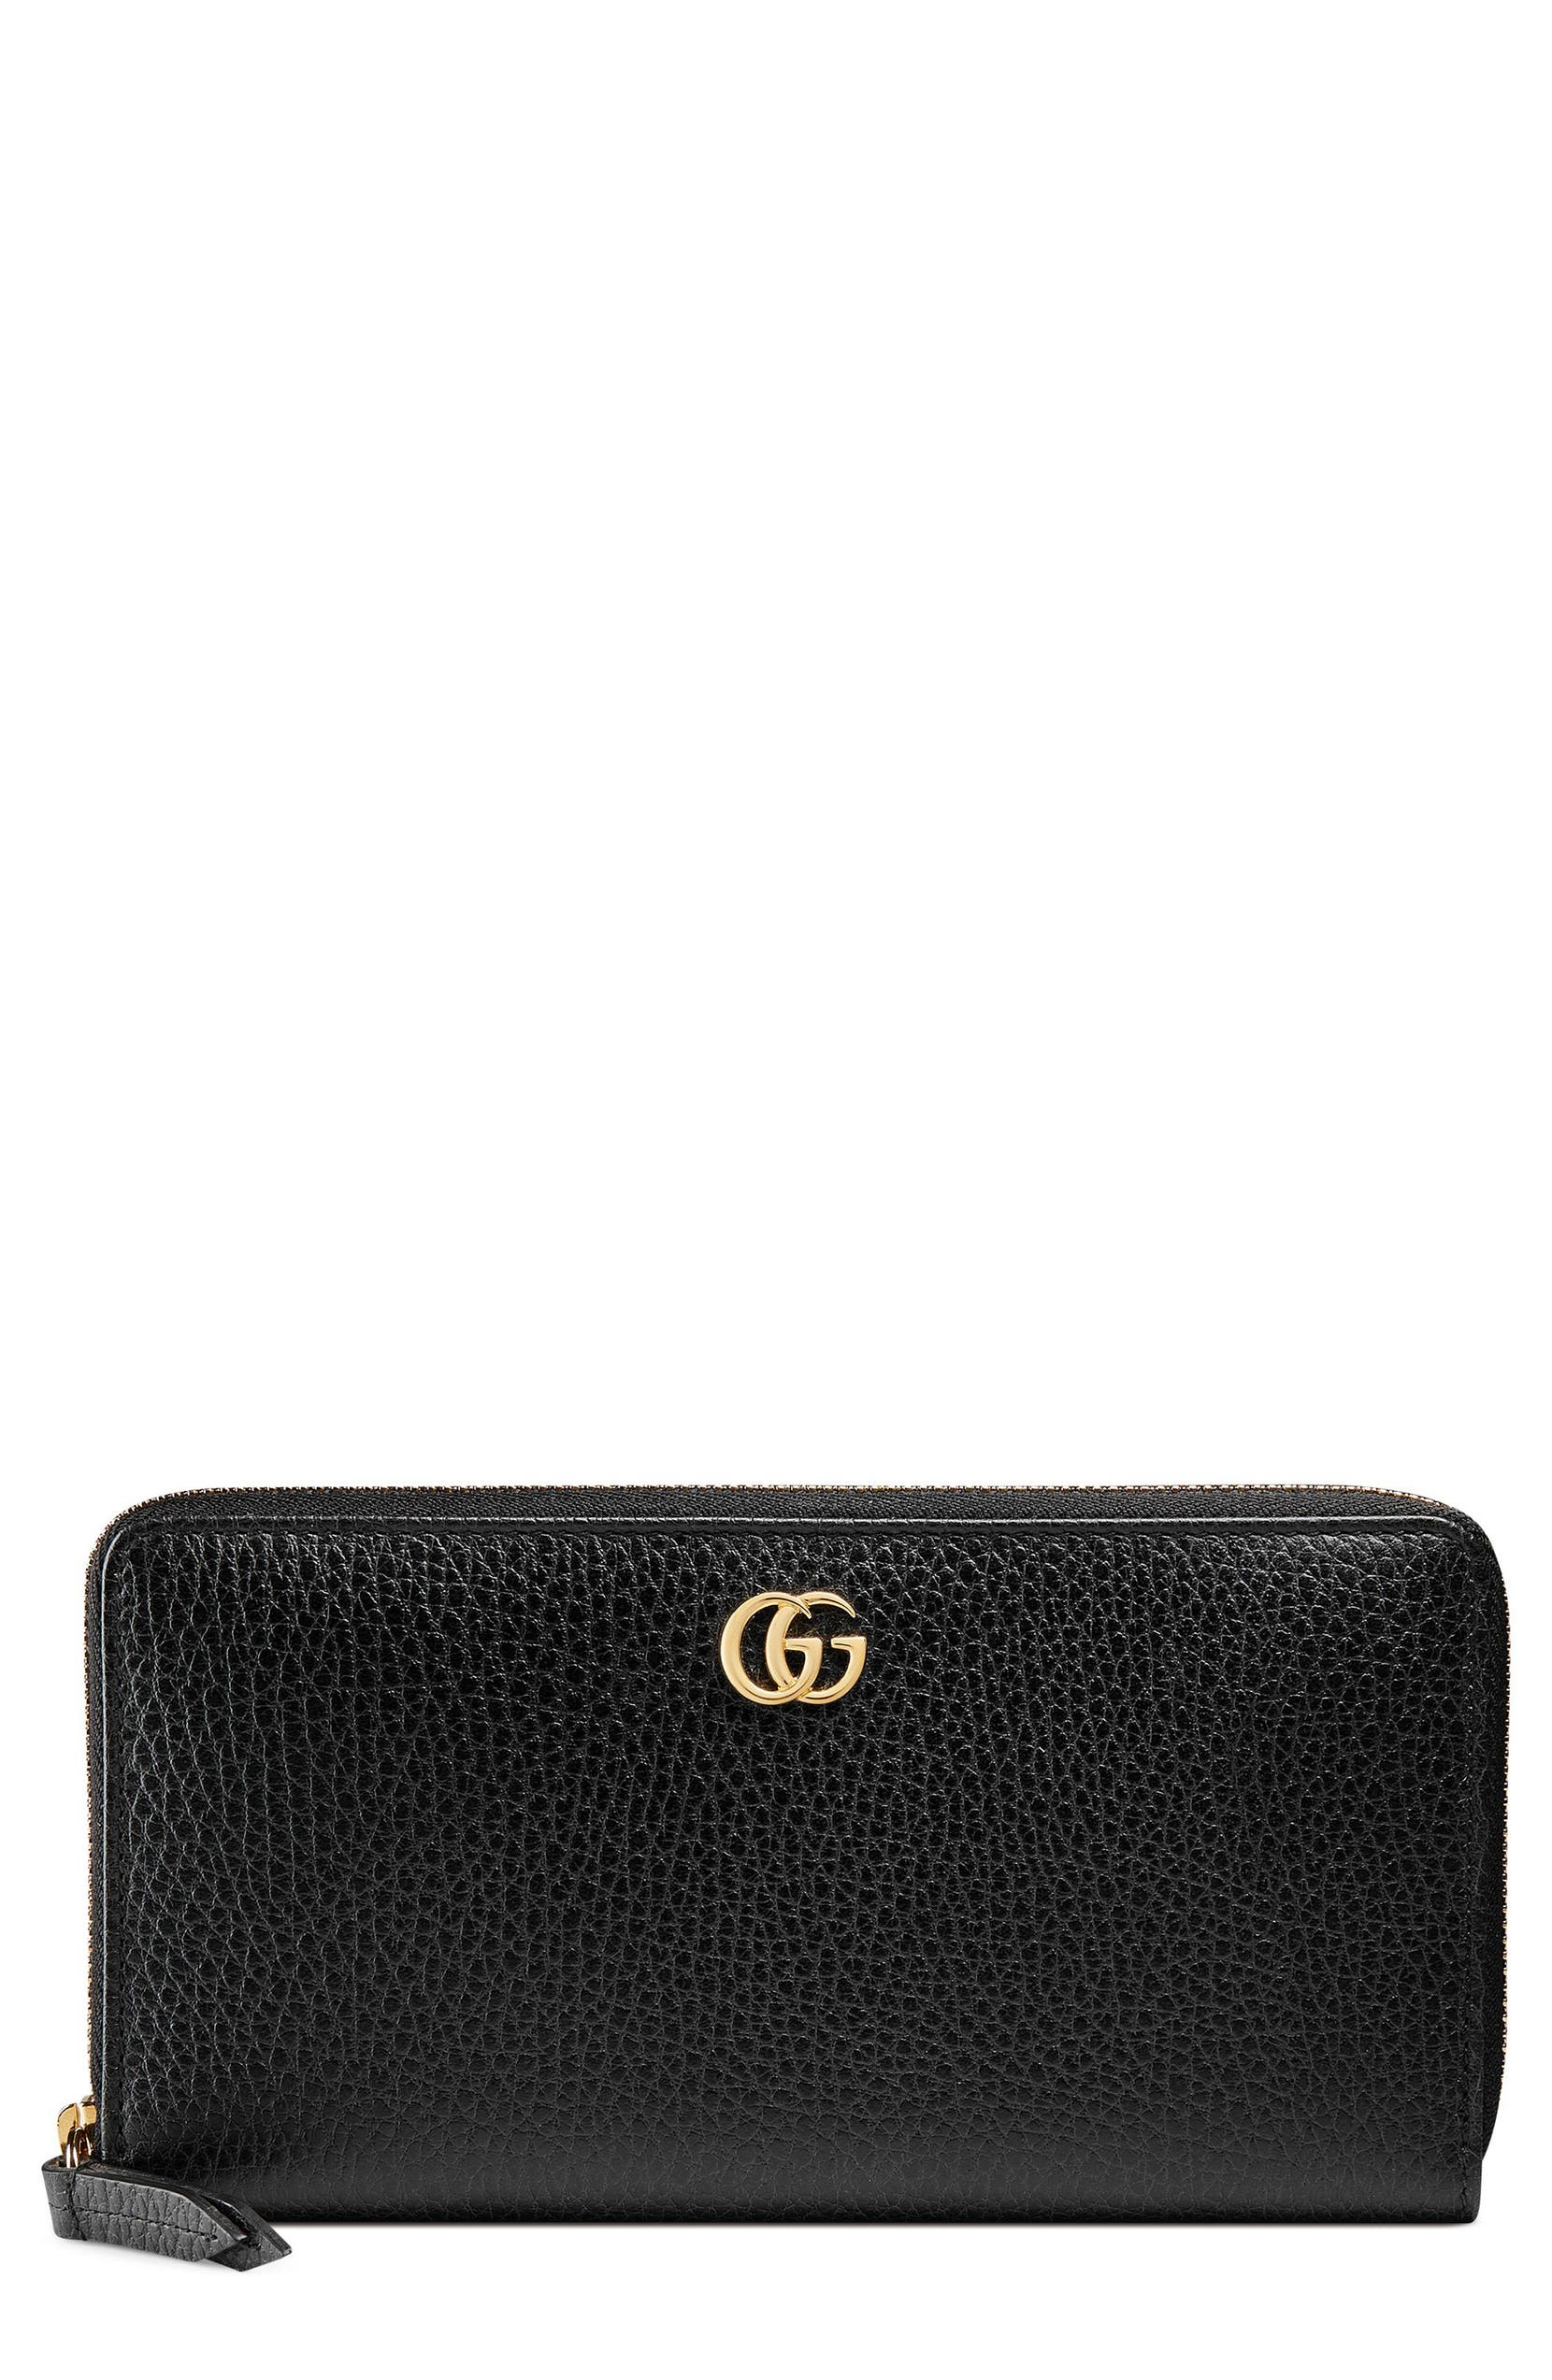 dbe6b958312d Gucci Petite Marmont Leather Zip Around Wallet | Nordstrom